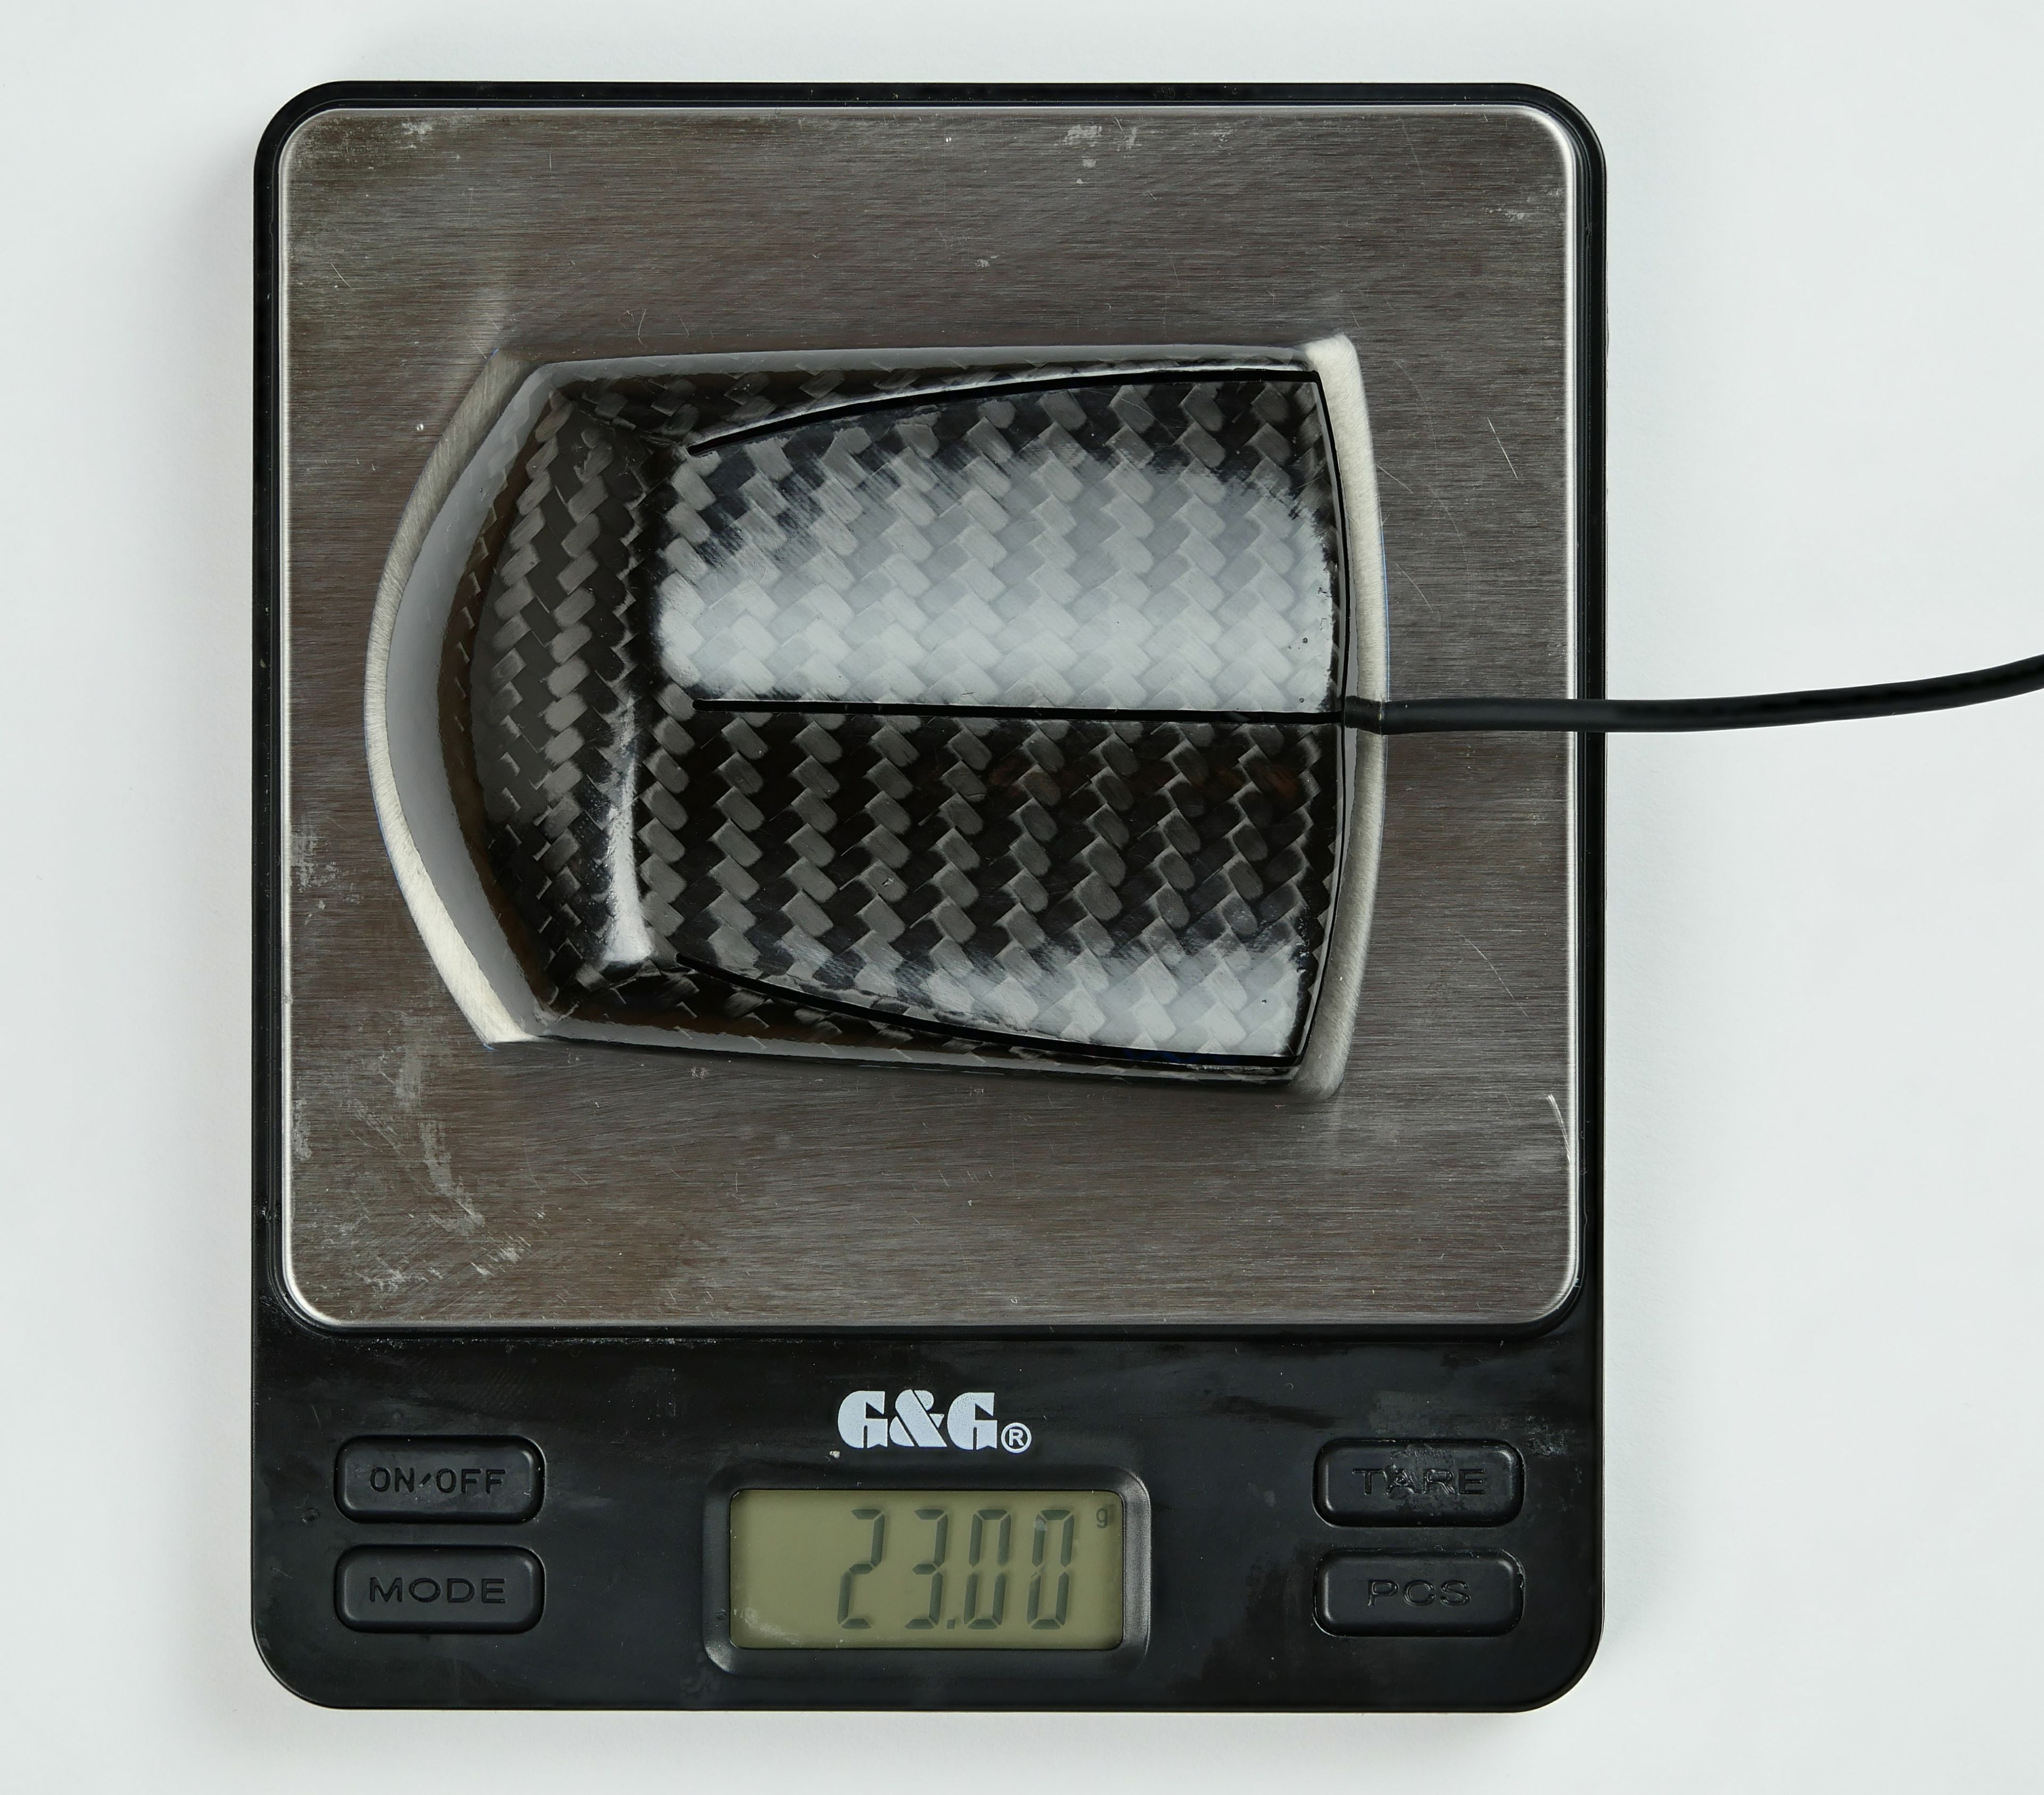 This picture shows the Zaunkoenig M1K sitting on a scale. The M1K weighs in at just 23 grams, easily making it the worlds lightest gaming mouse. The only gaming mouse that can hold a candle to the M1K is the M2K, which is just one gram heavier, clocking in at 24 grams.